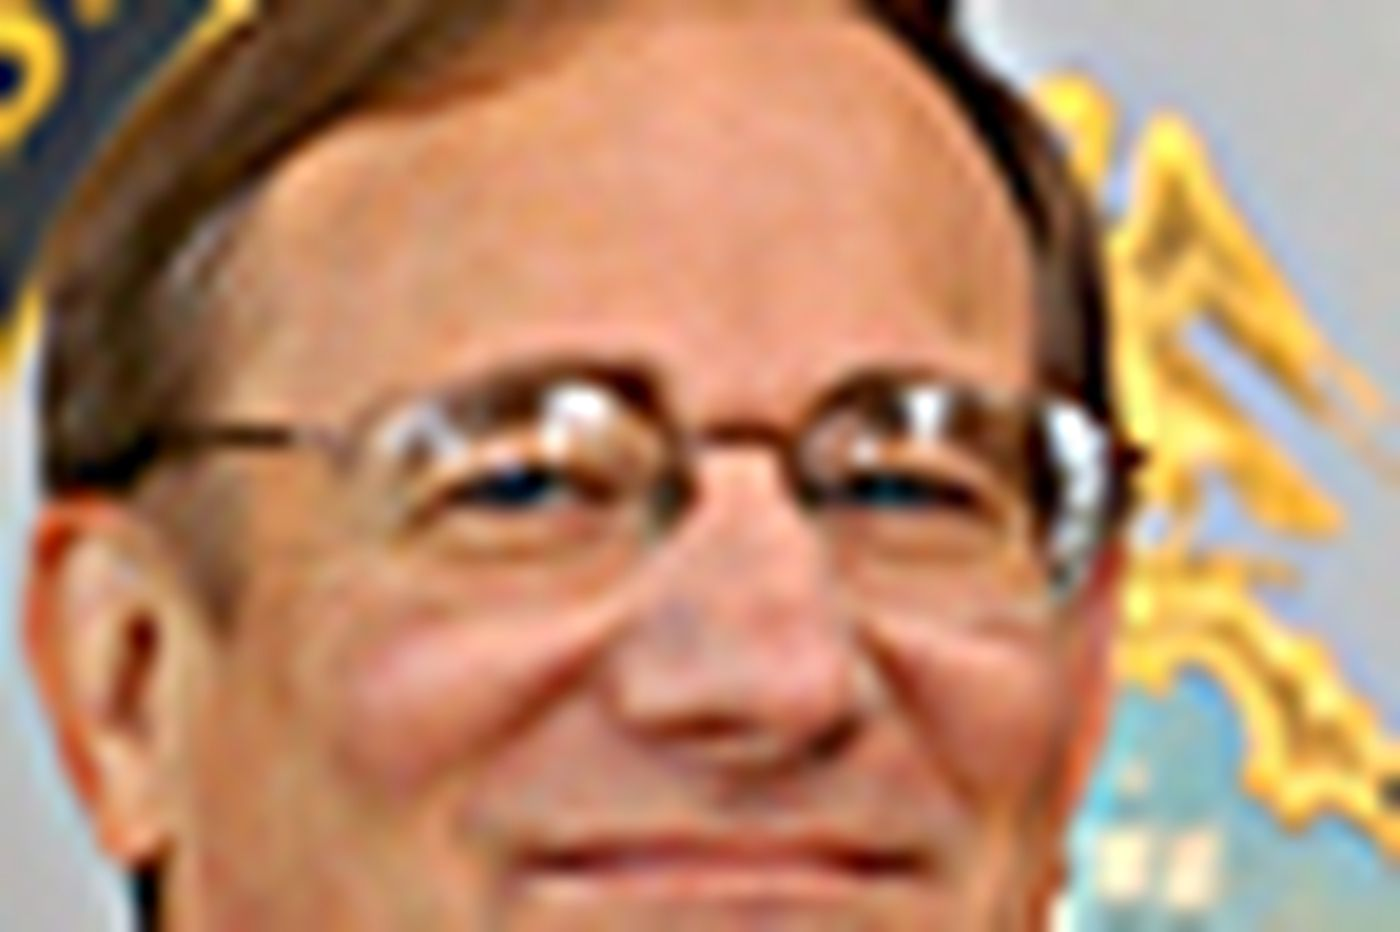 Lower Merion official's pay raising eyebrows